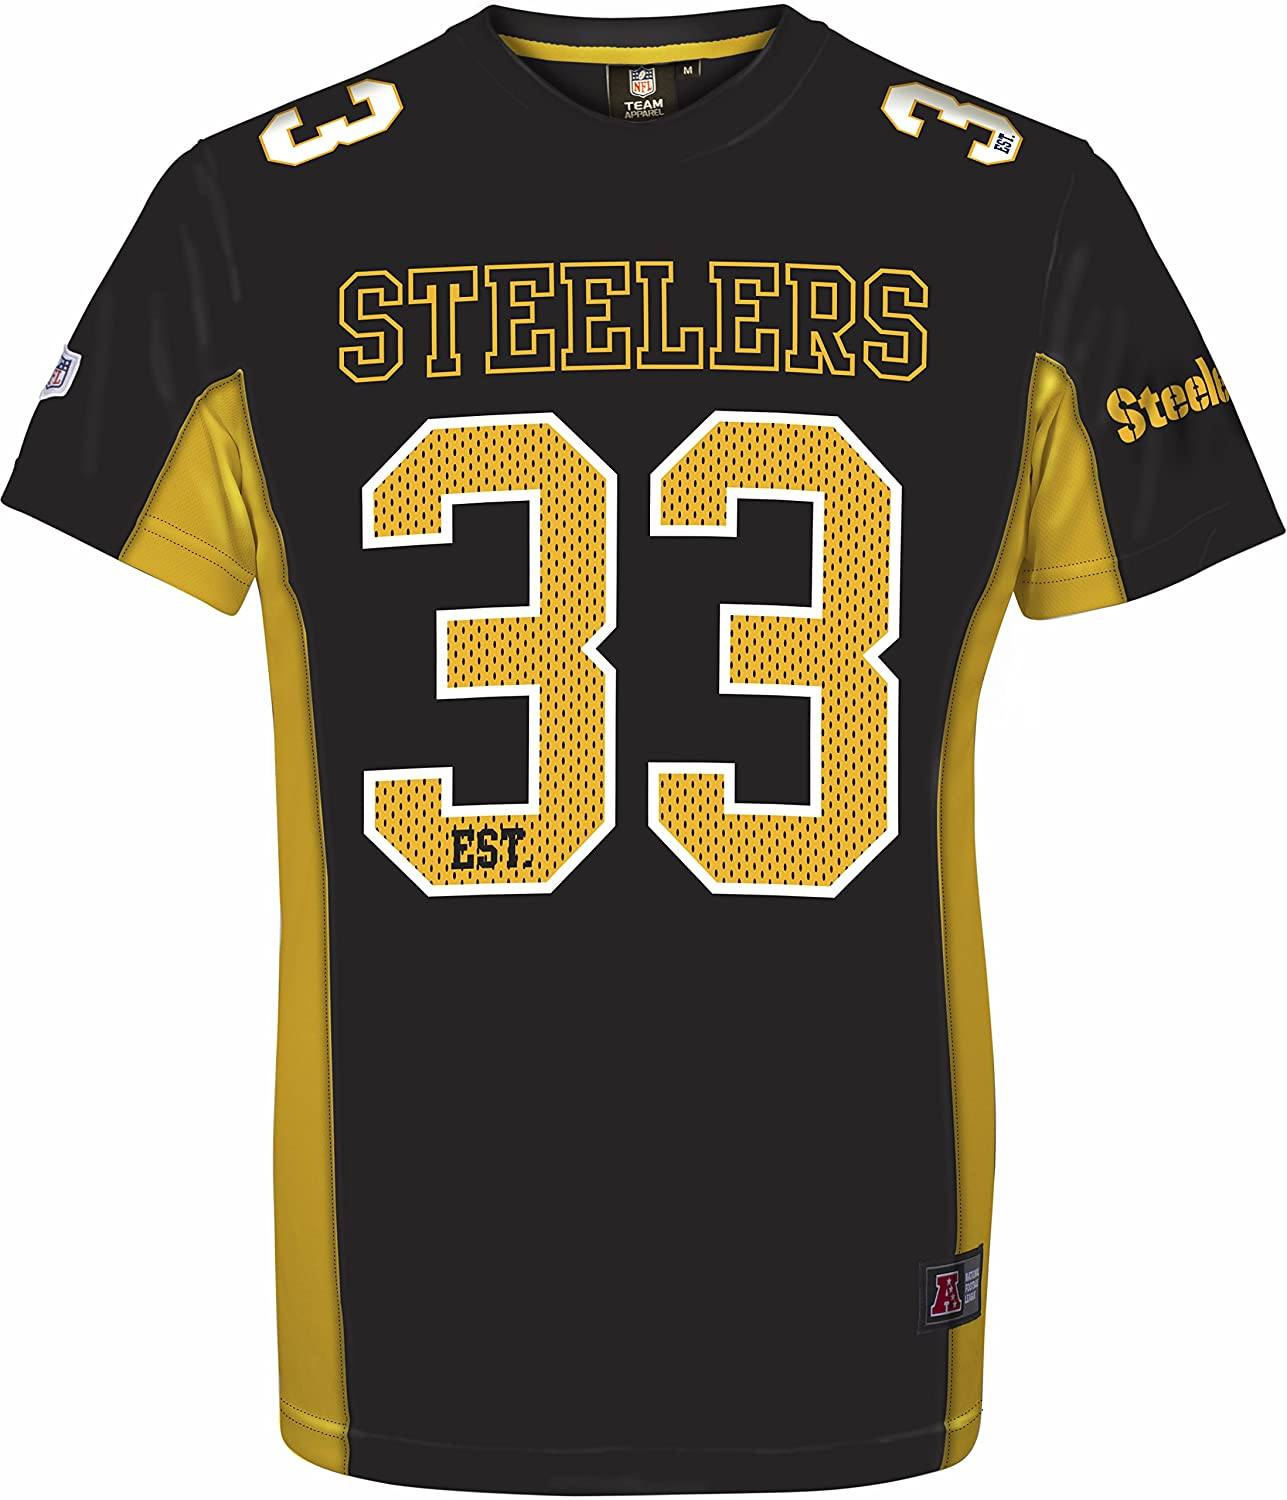 Majestic NFL Football Trikot Jersey Shirt Pittsburgh Steelers established majestic athletics